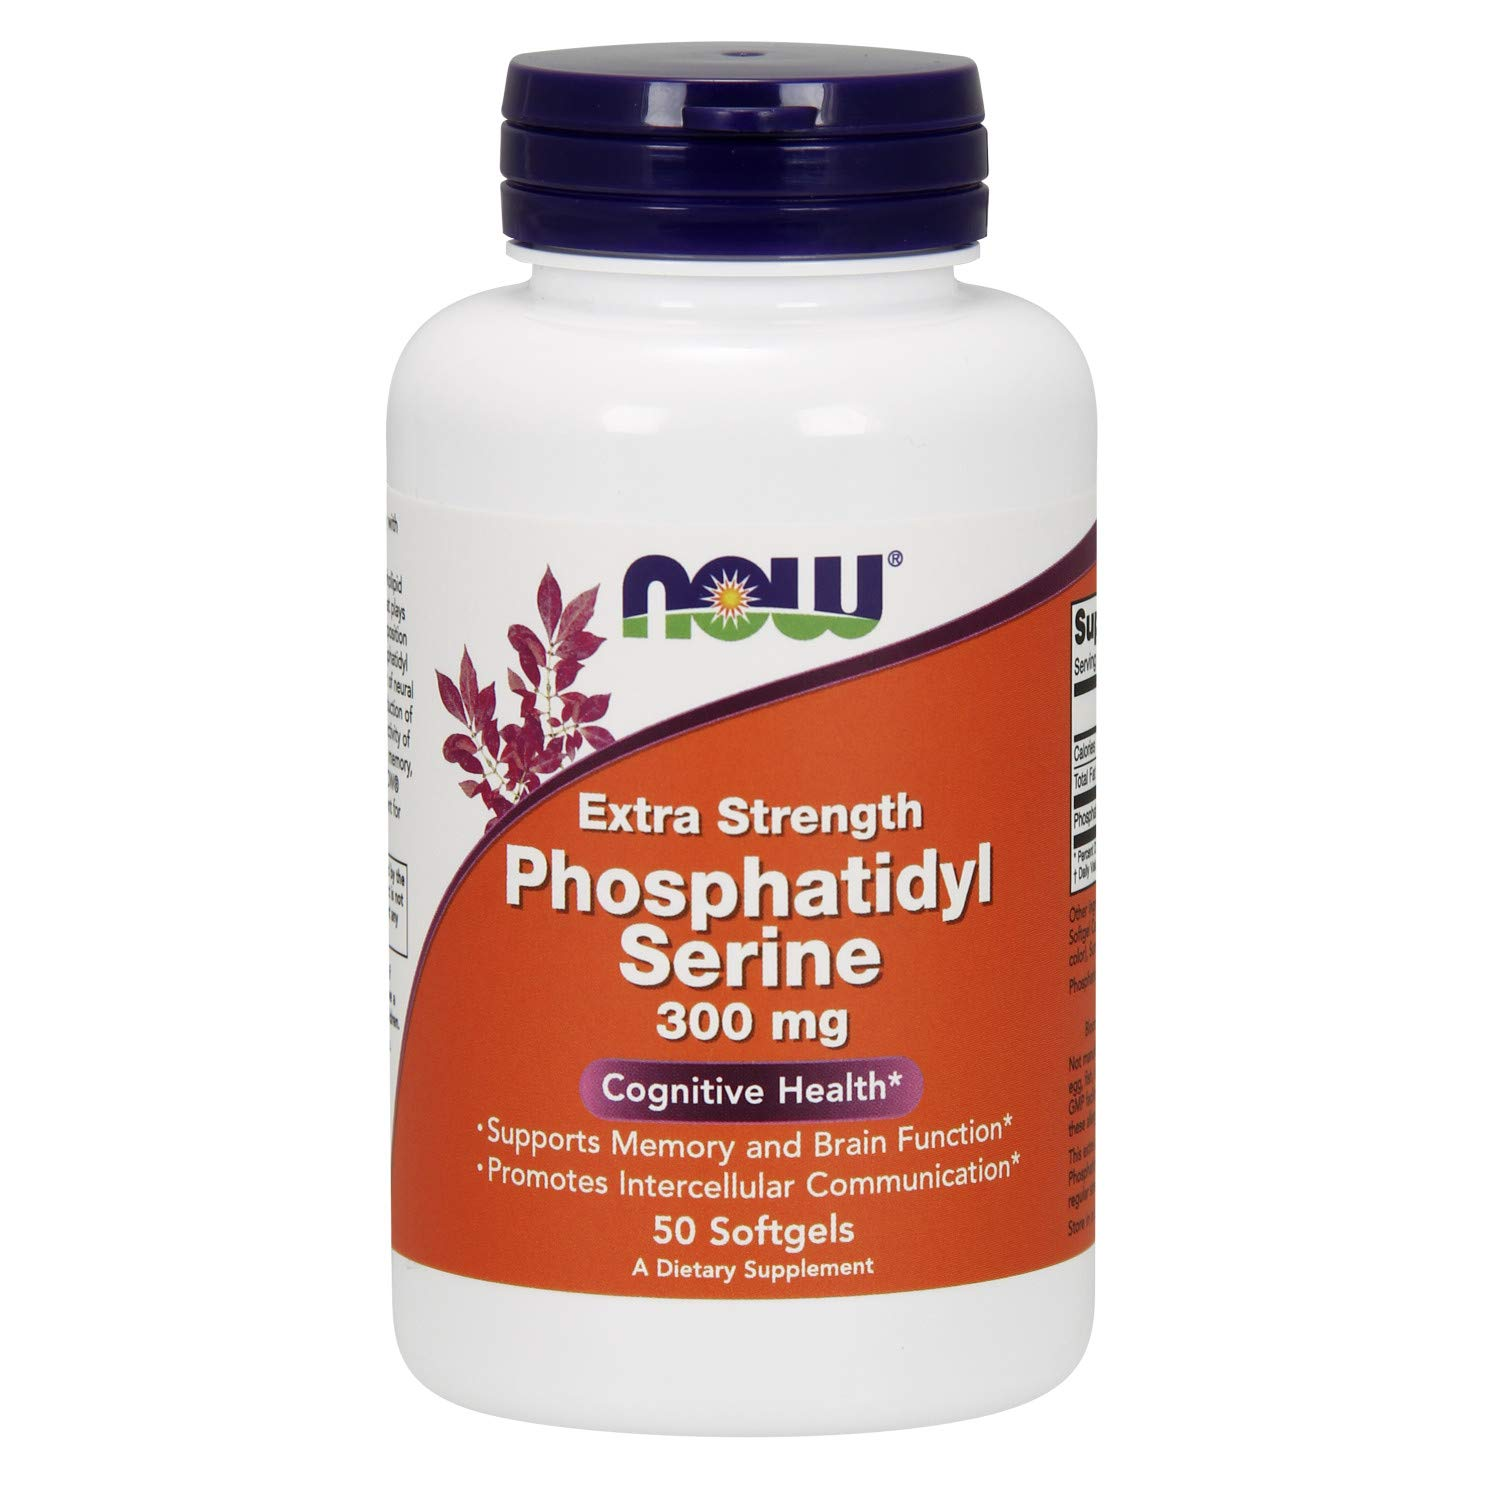 Now Supplements, Phosphatidyl Serine 300 mg, Extra Strength, with Phospholipid Compound derived from Soy Lecithin, 50 Softgels by NOW Foods